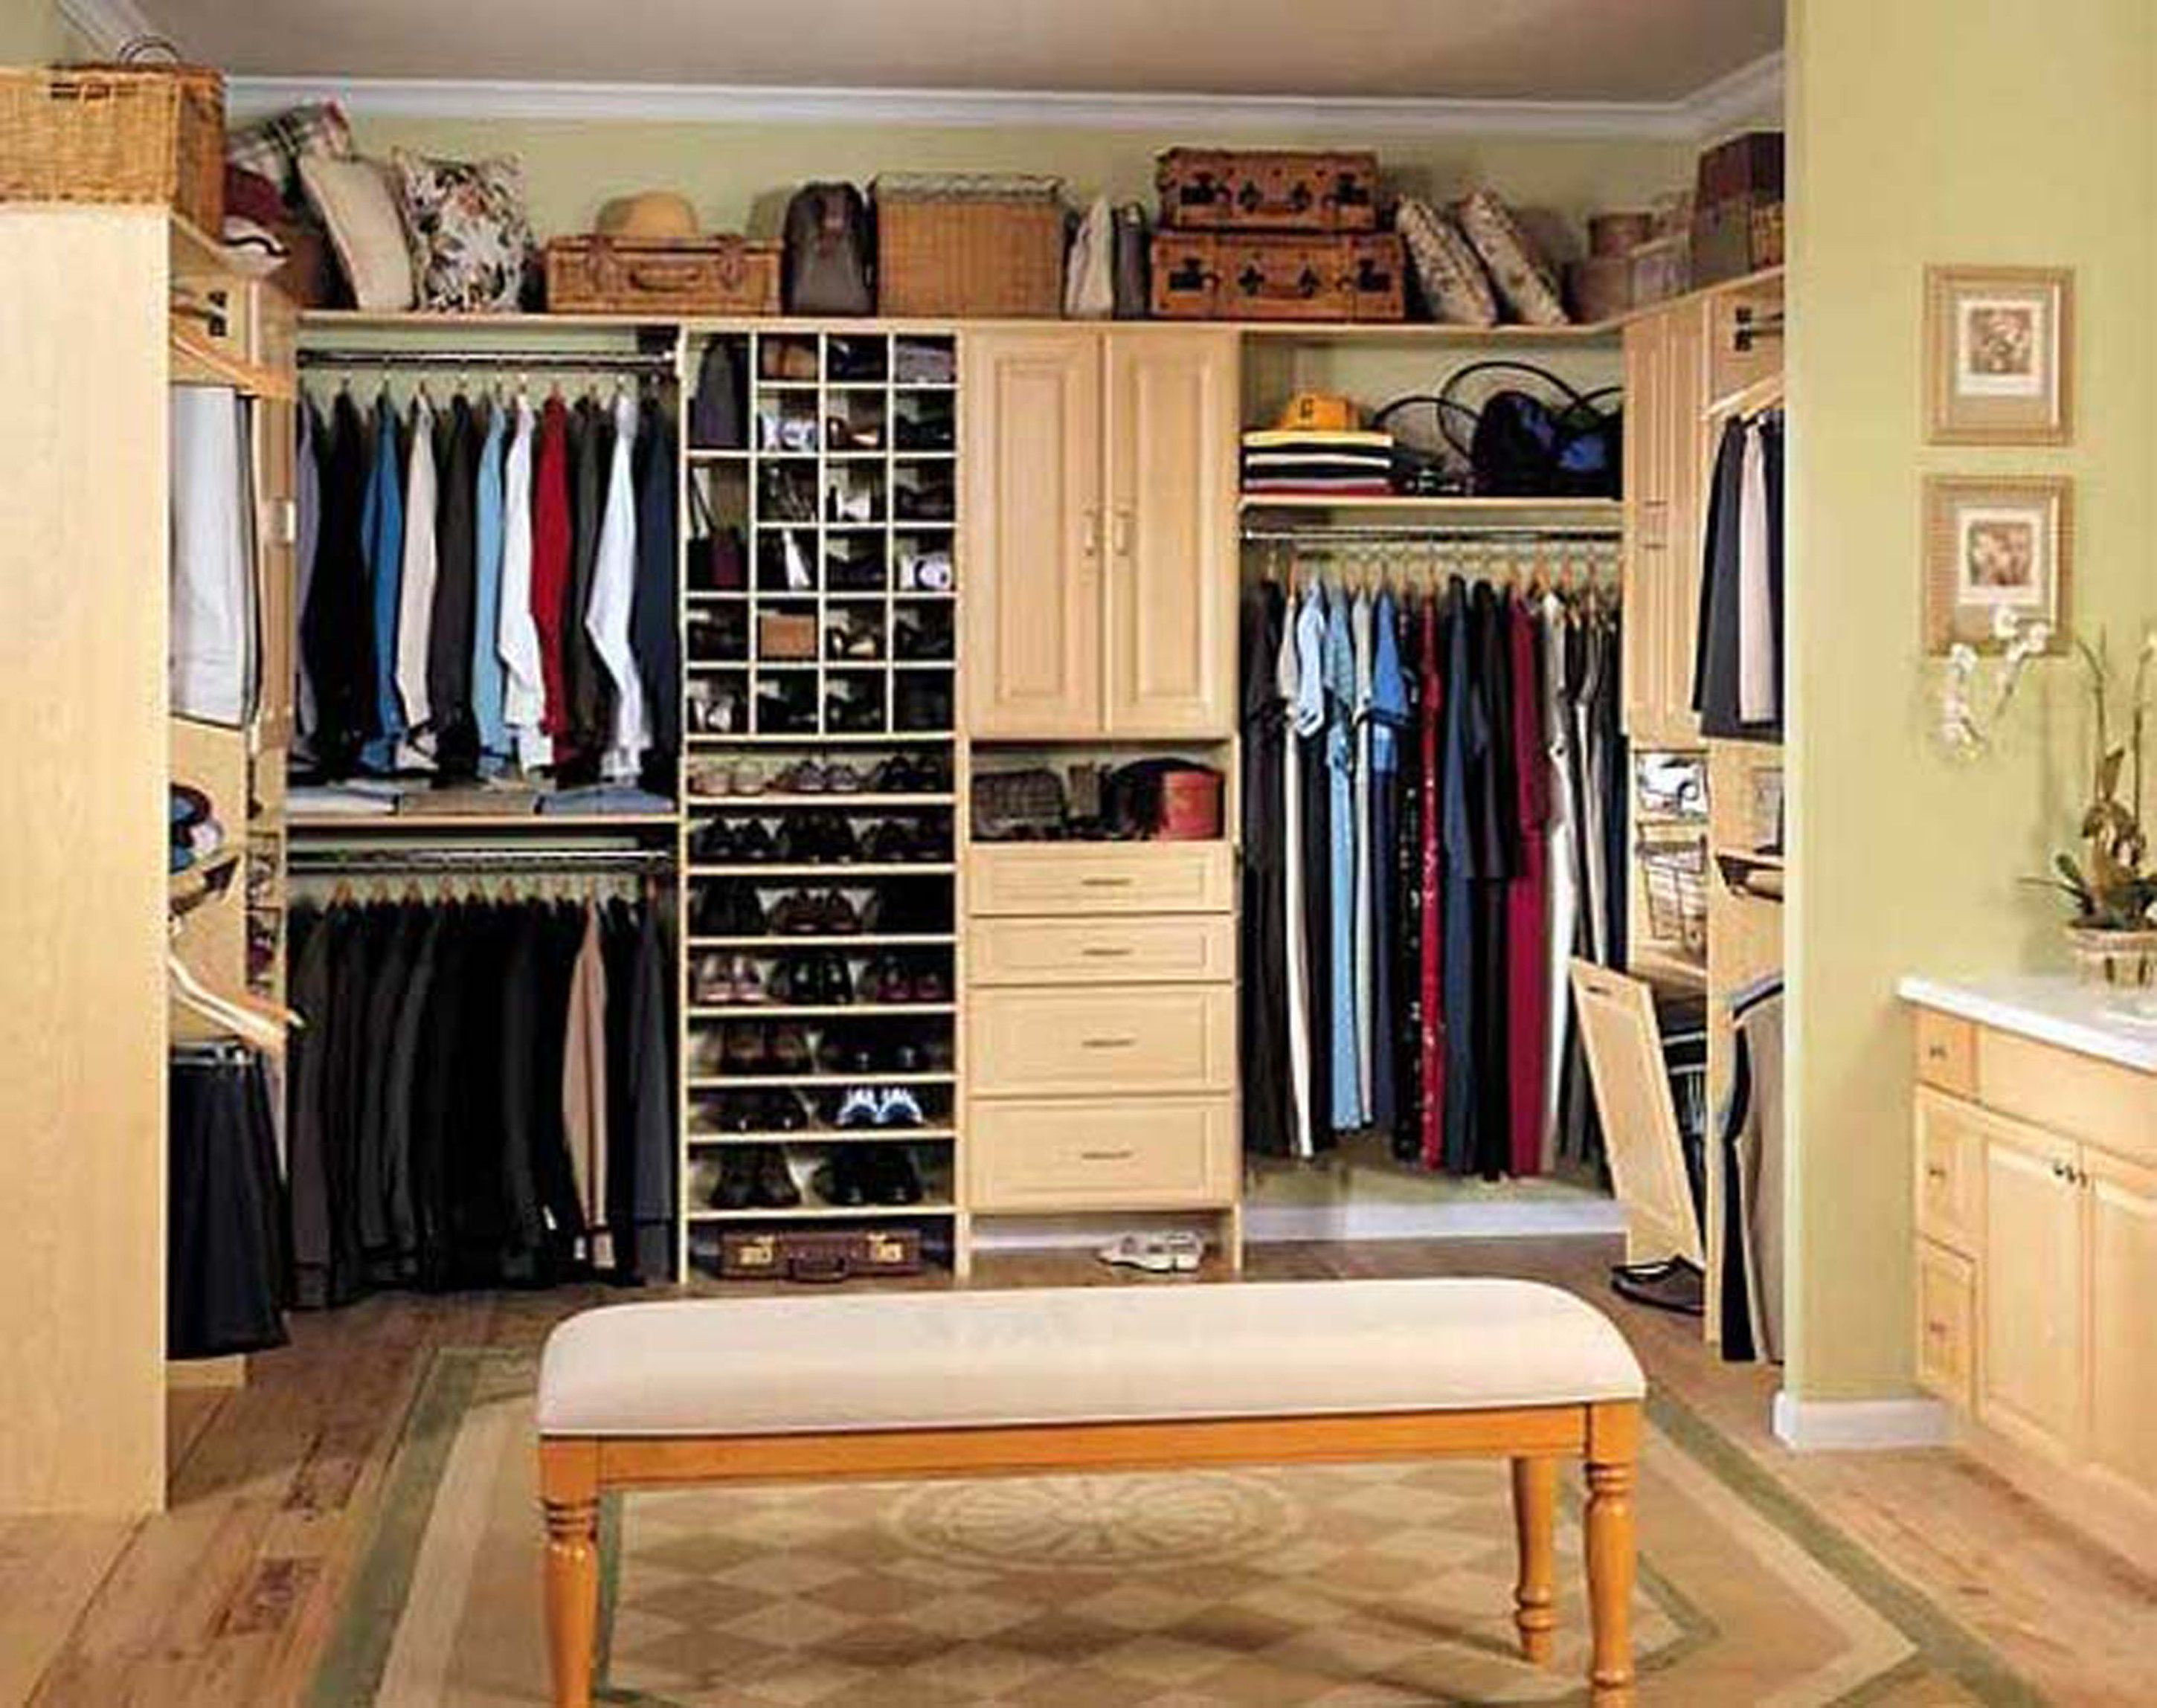 Simple small closet organization tips smart home decorating ideas - Place Long Bench In Wide Walk In Closed Using Tidy Closet Storage Ideas With Shoes Shelves